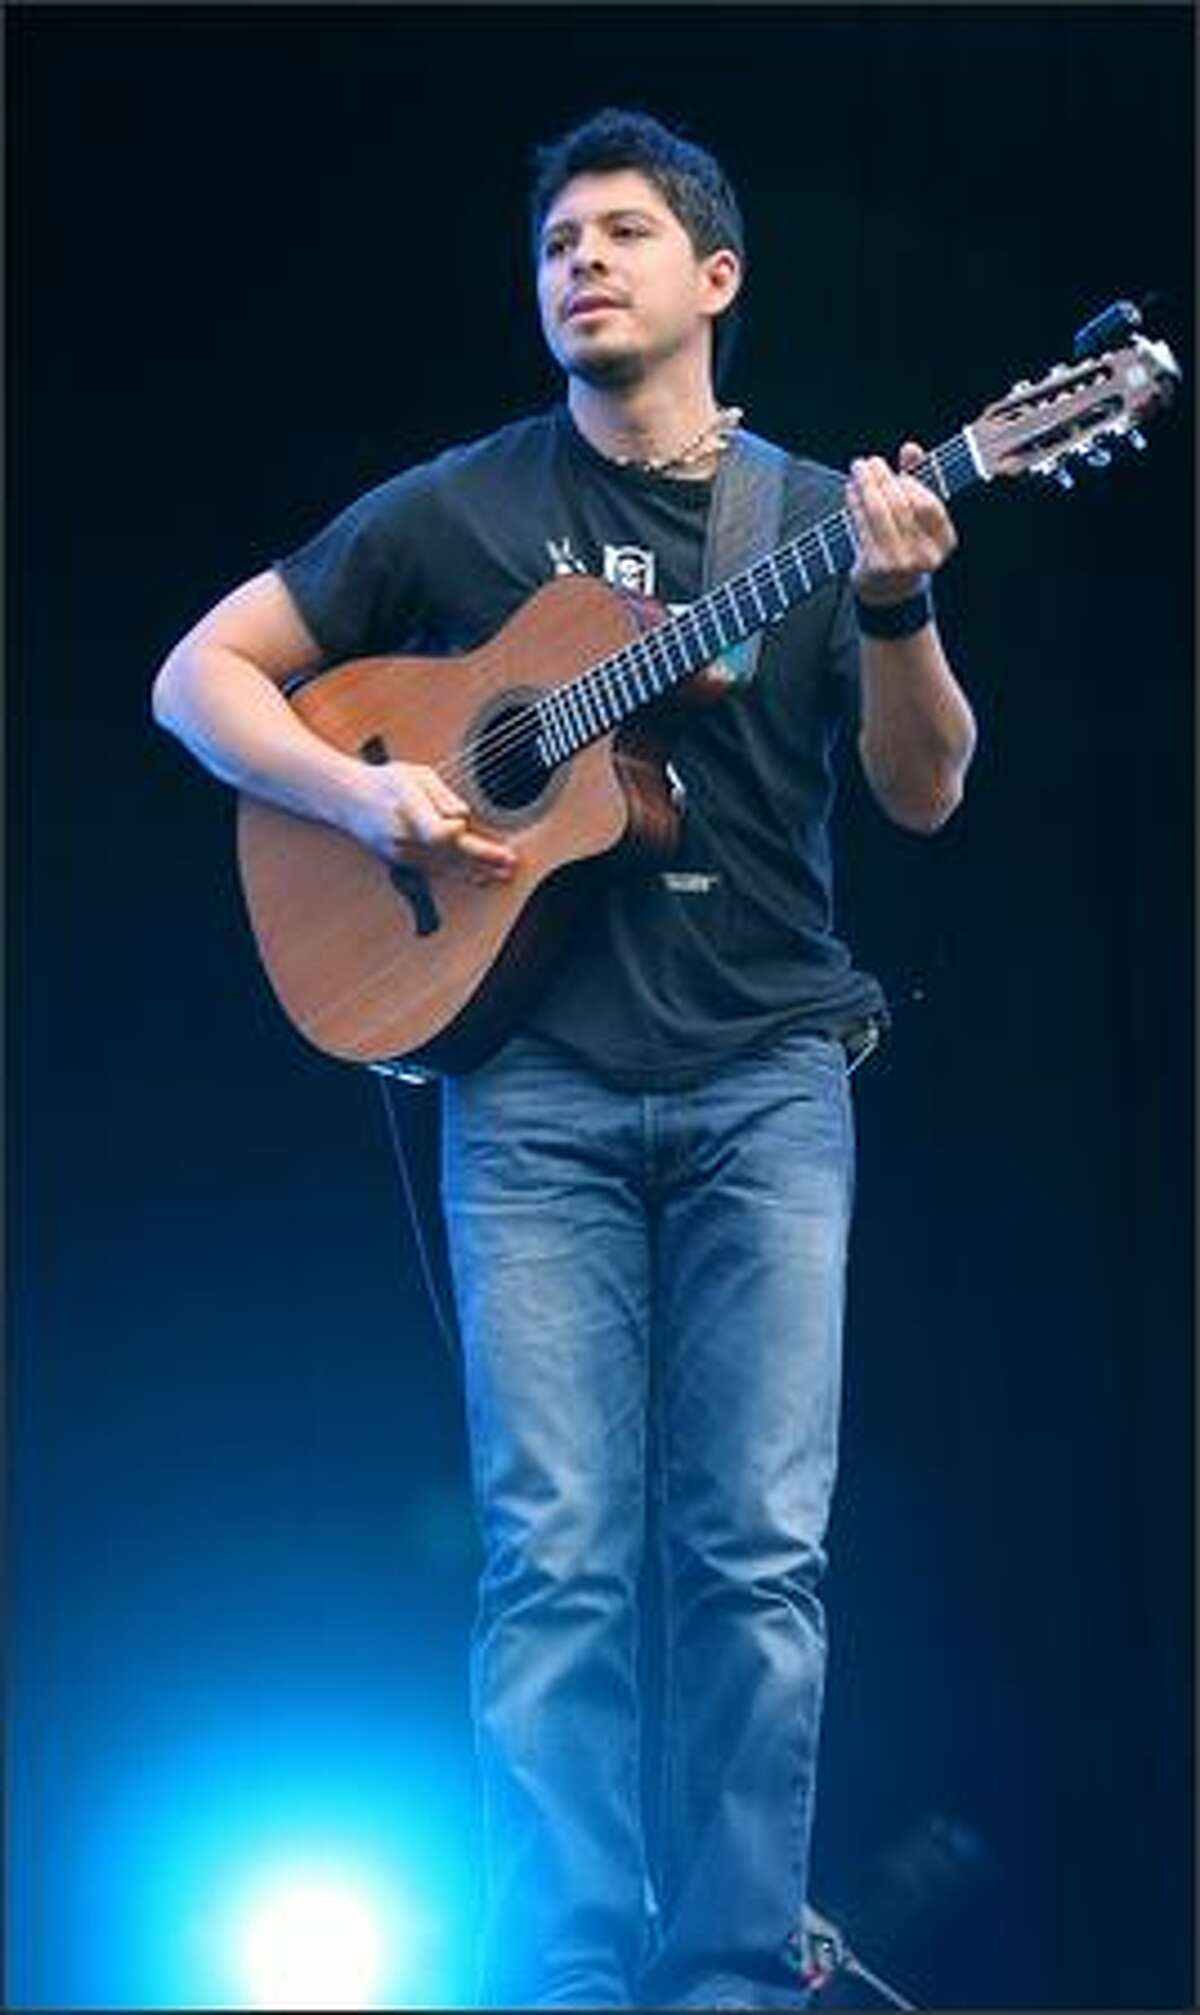 Rodrigo Sanchez of Mexican guitar duo Rodrigo y Gabriela performs the opening act of the Fuji Rock Festival at Naba Ski Resort in Yuzawa, Niigata, Japan.